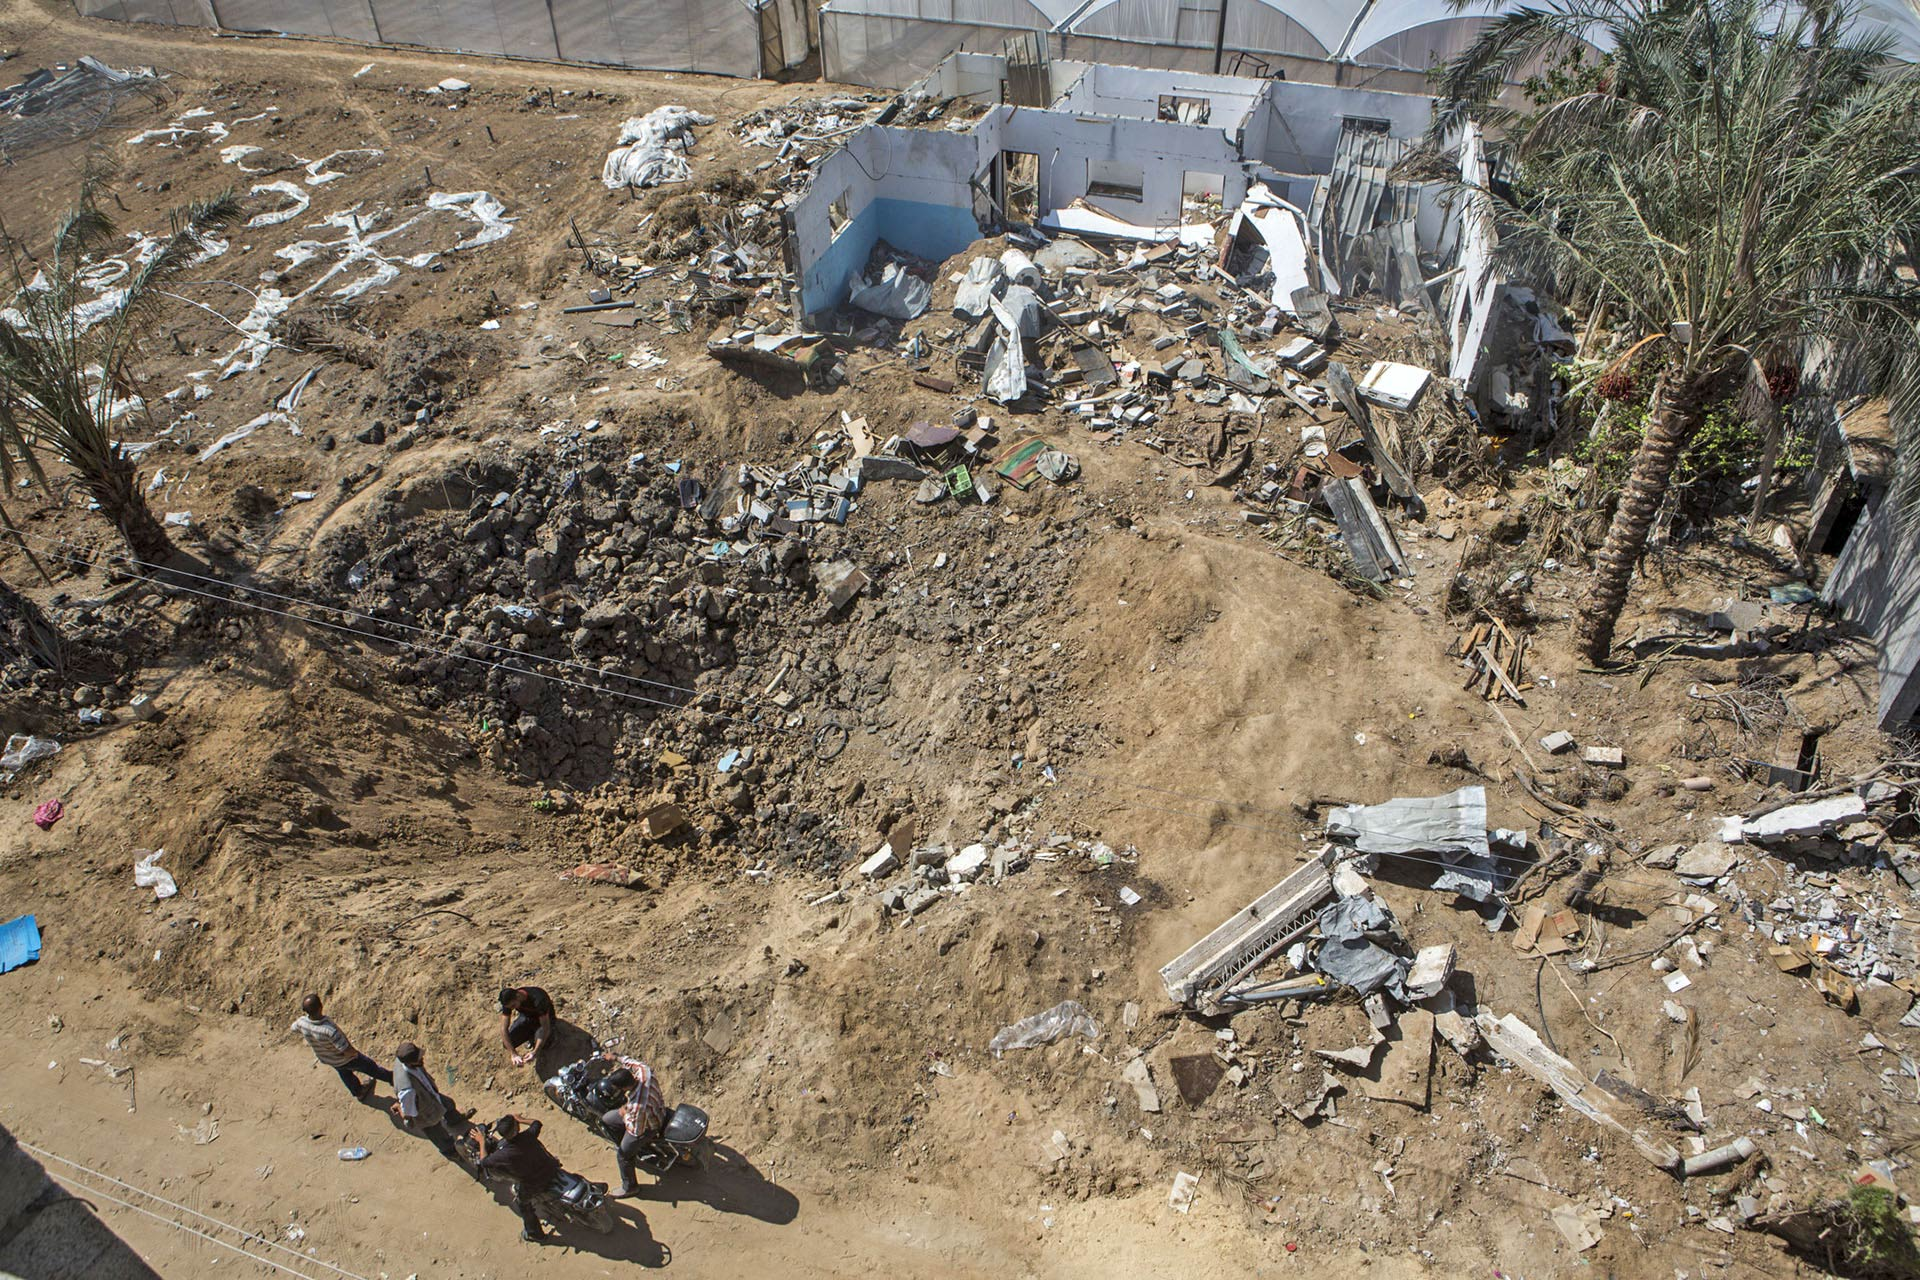 Seven trucks of sand were not enough to fill the bombed-out crater where Rafat's house once stood.